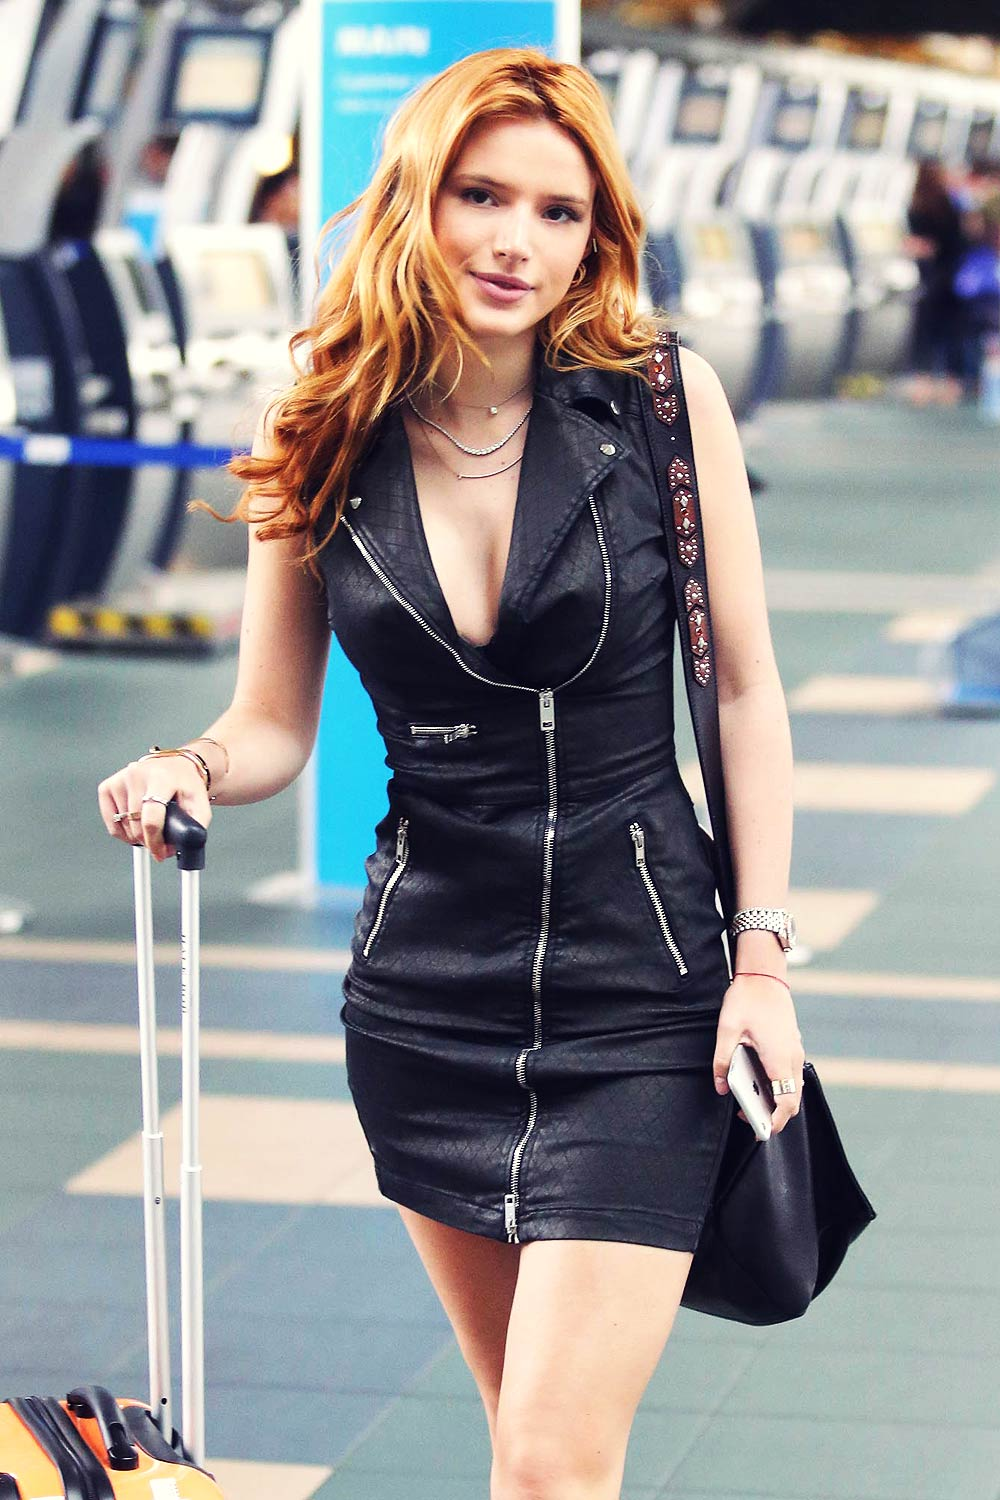 Bella Thorne At Vancouver Airport Leather Celebrities